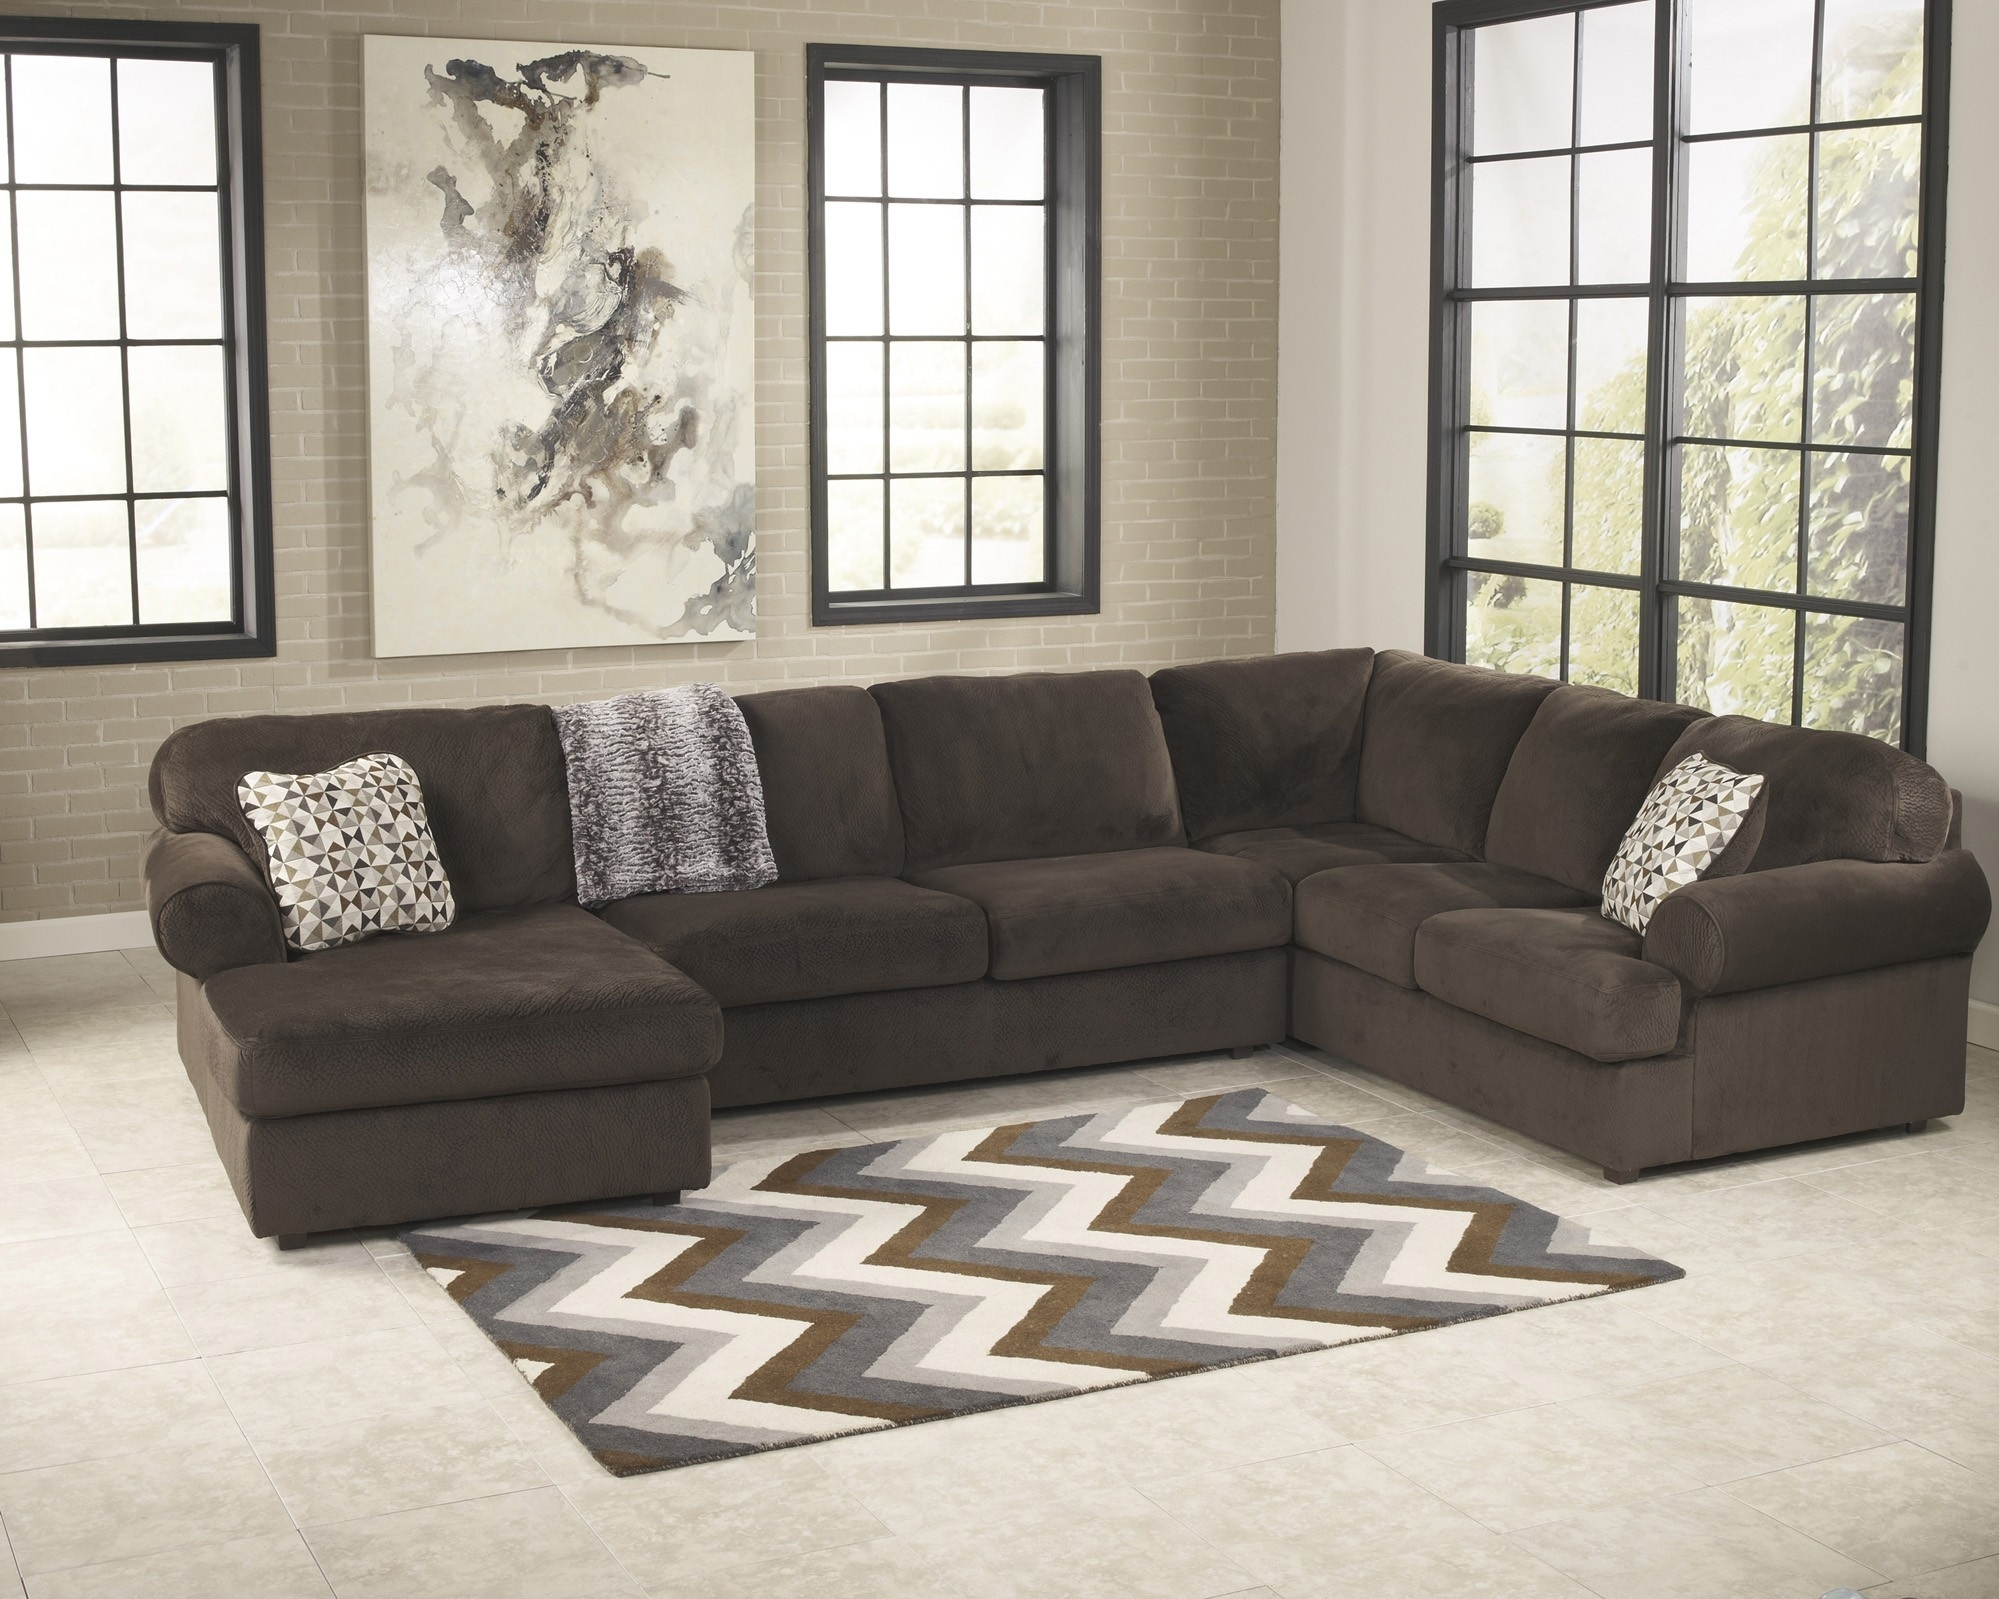 Jessa Place Chocolate 3 Piece Sectional Sofa For $ (Image 7 of 10)